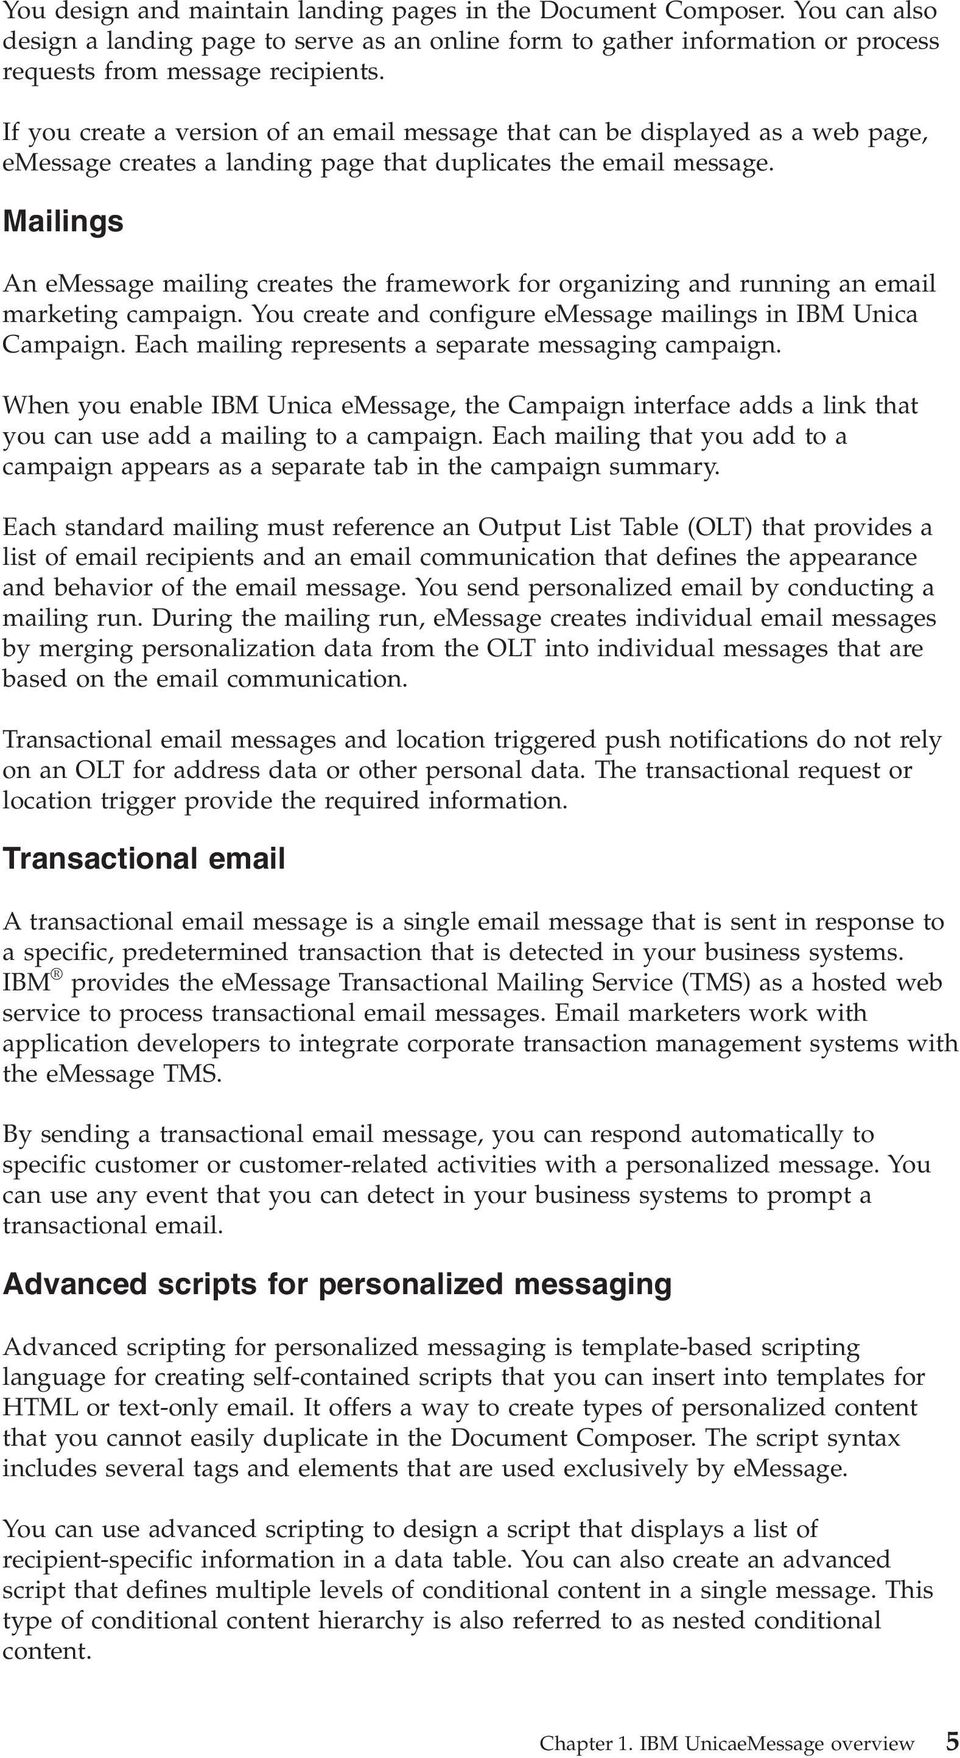 Mailings An emessage mailing creates the framework for organizing and running an email marketing campaign. You create and configure emessage mailings in IBM Unica Campaign.